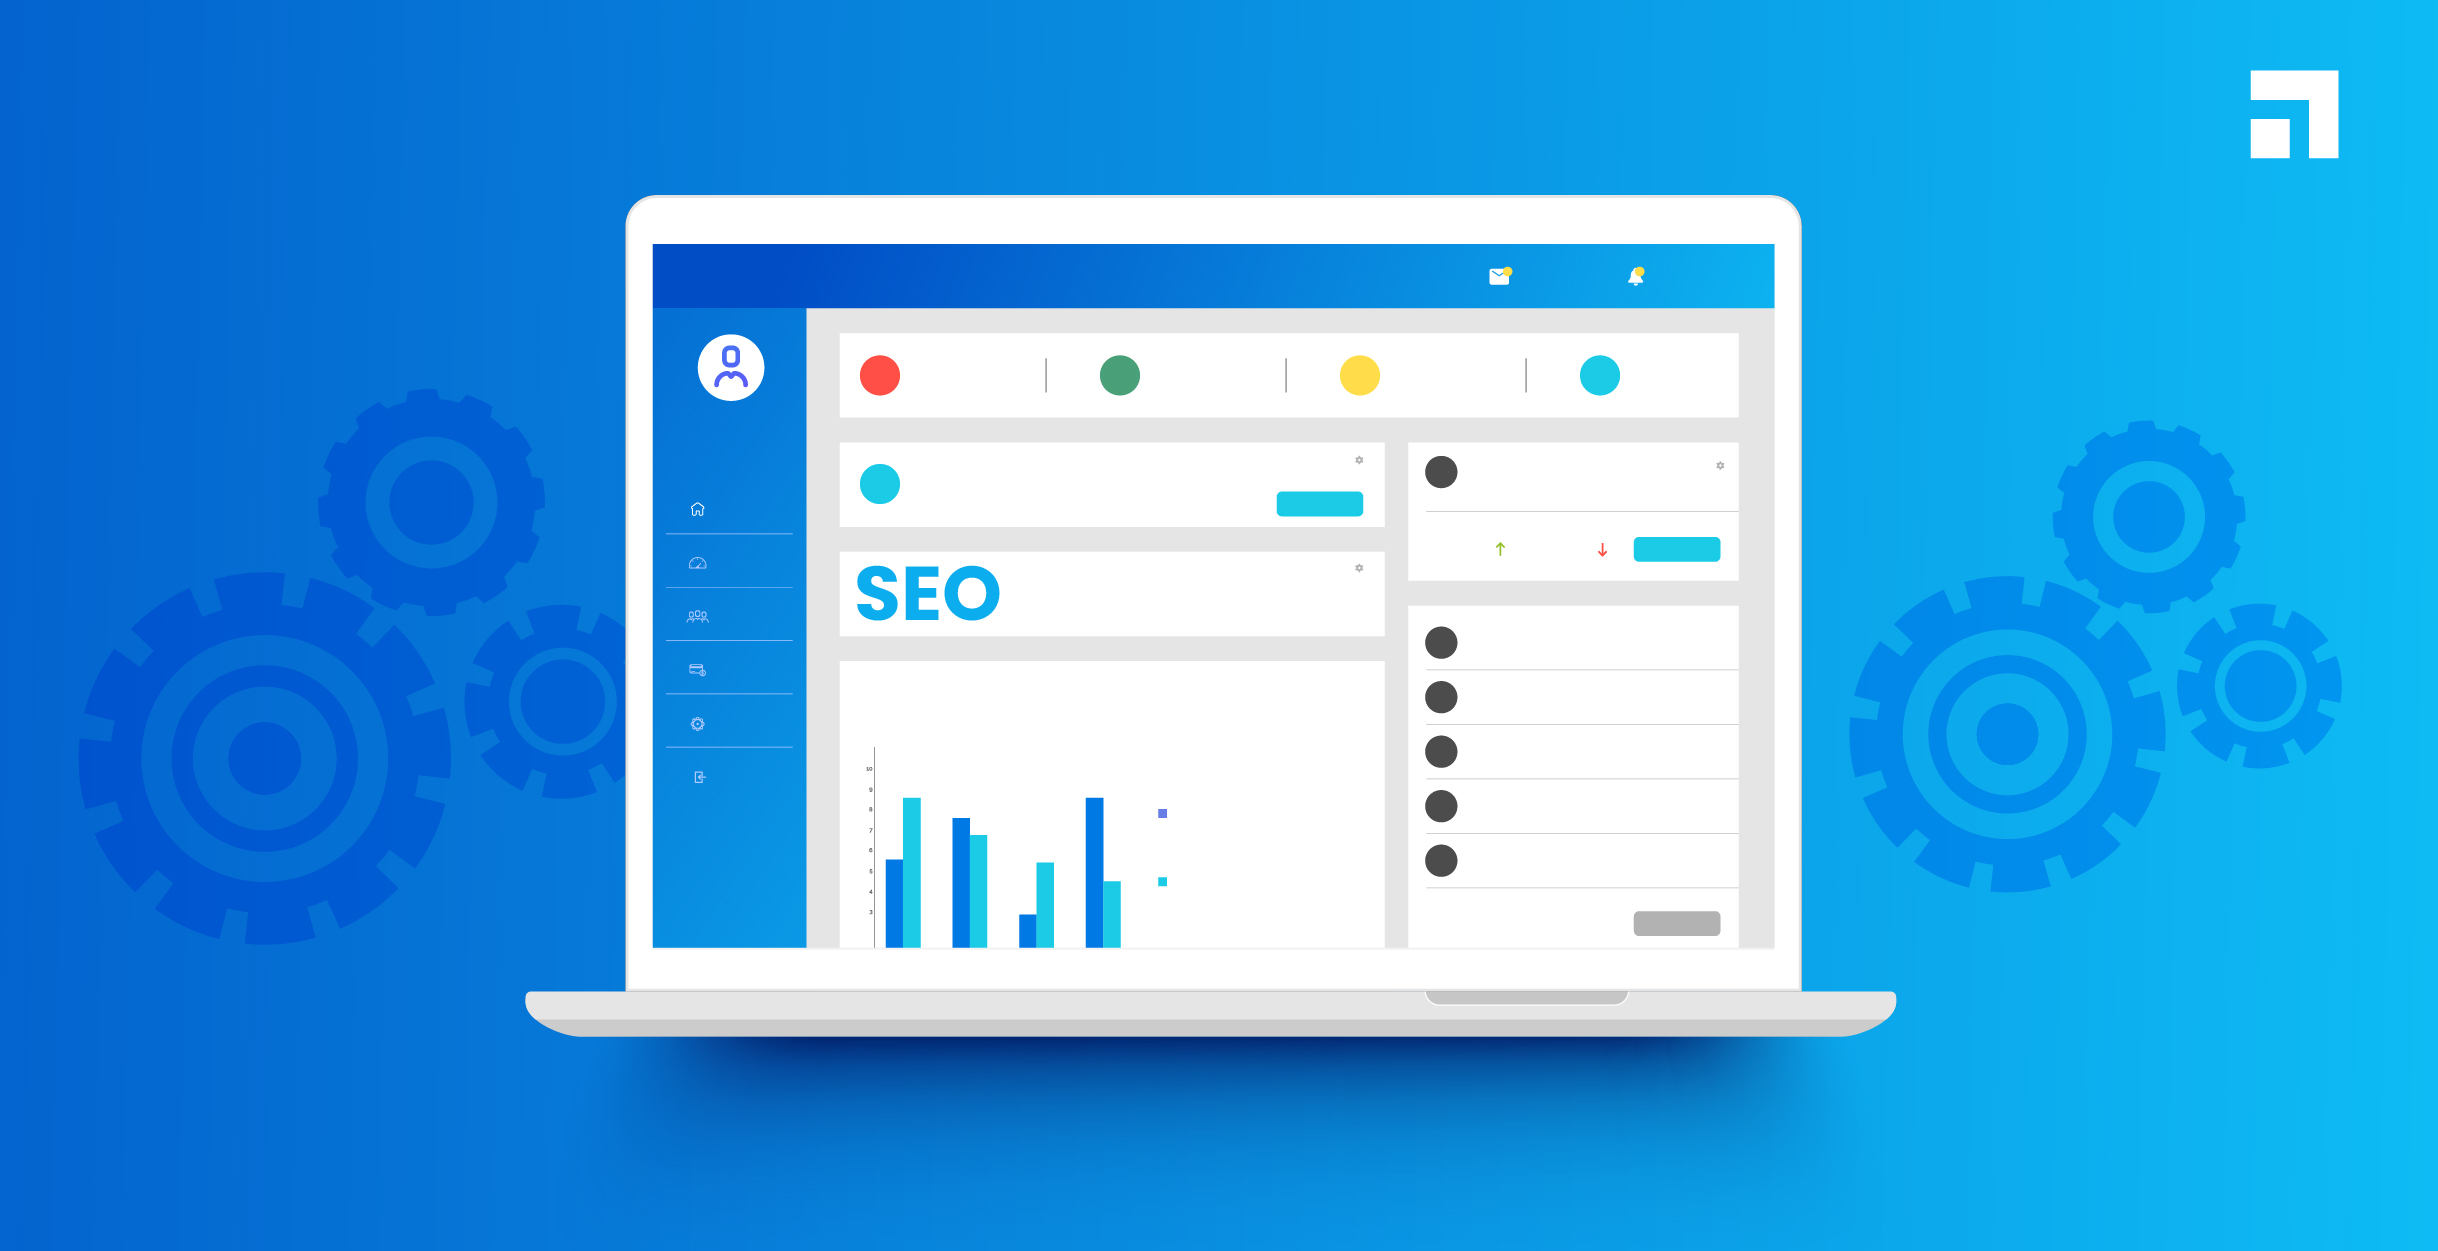 Top 10 Best SEO Tools to Explode Your Blog Traffic in 2021